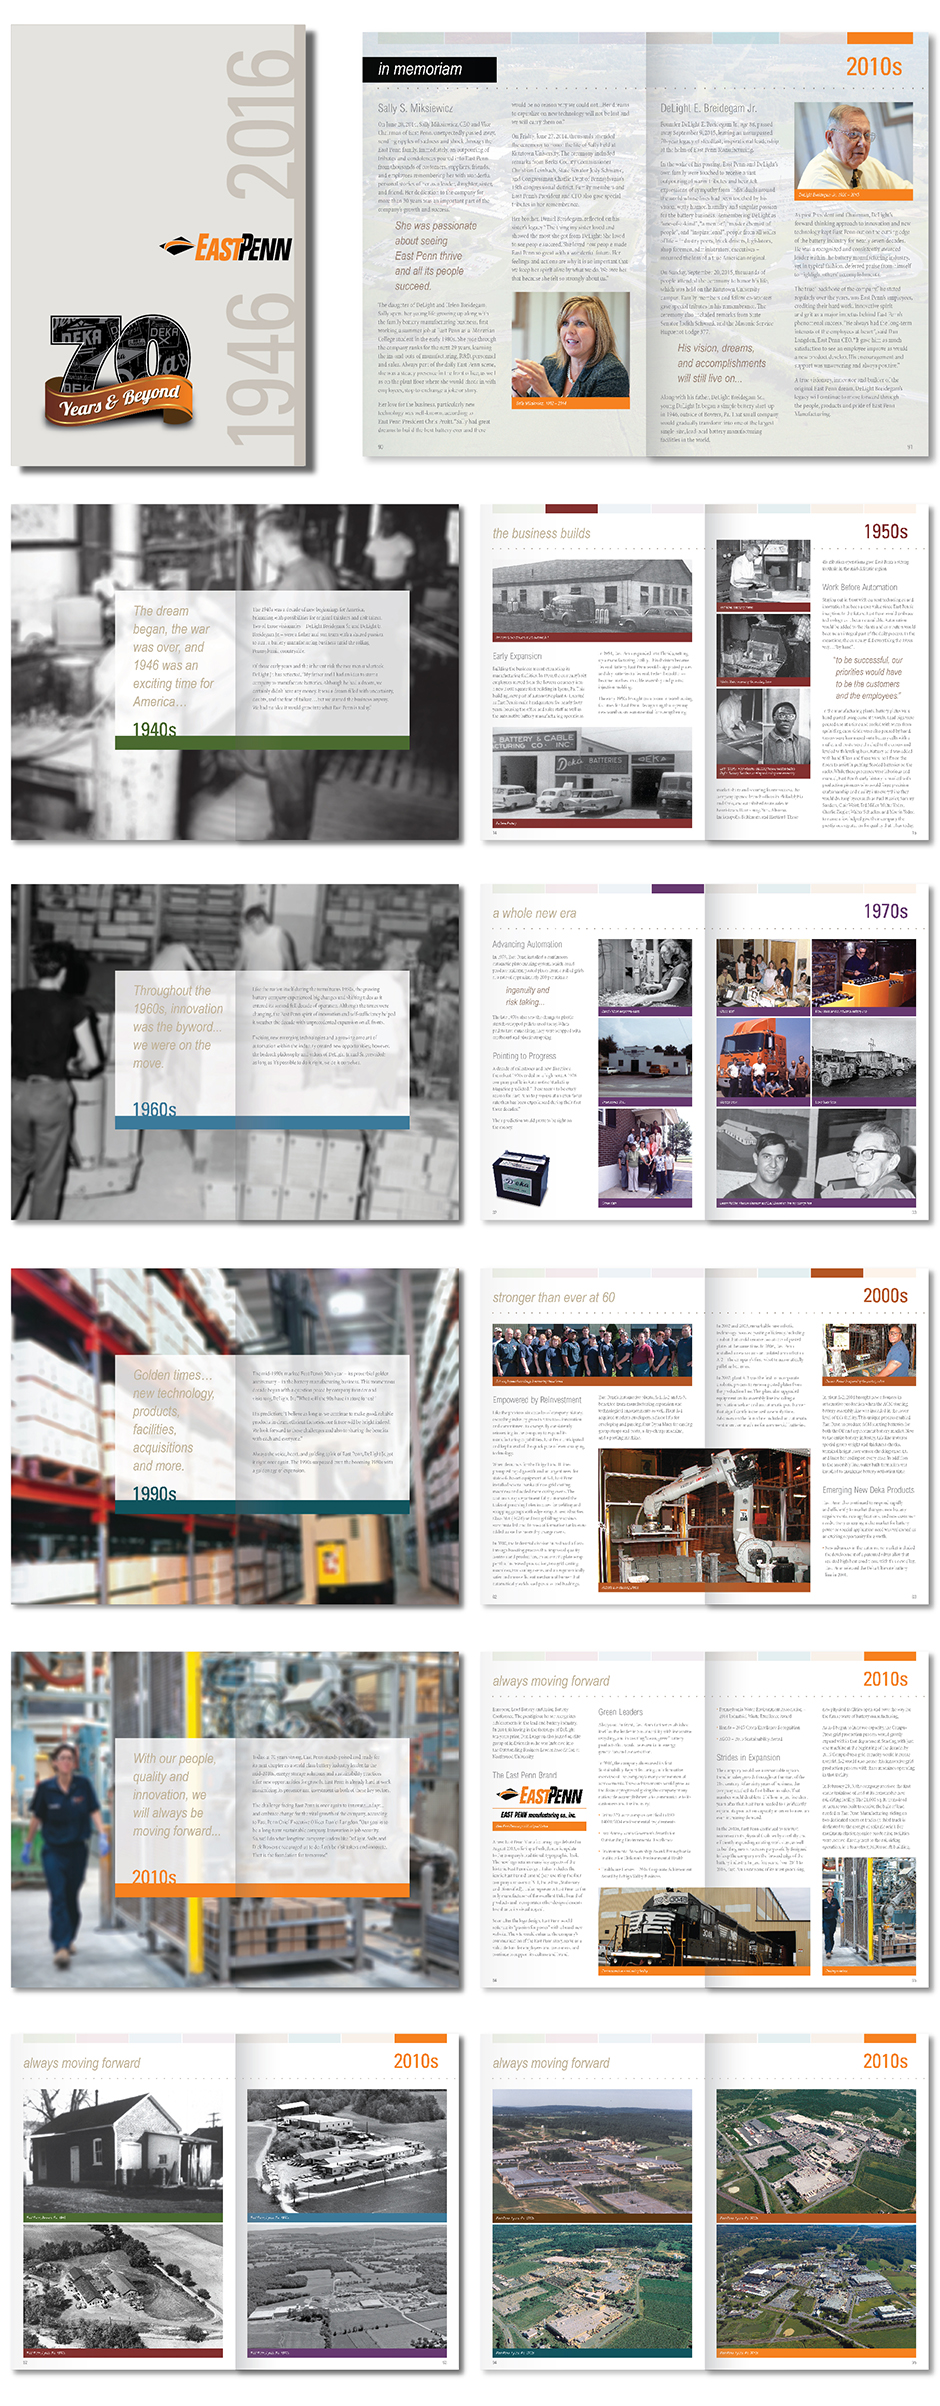 East Penn Manufacturing 70th Anniversary Book with Cover and Sample Page Spreads